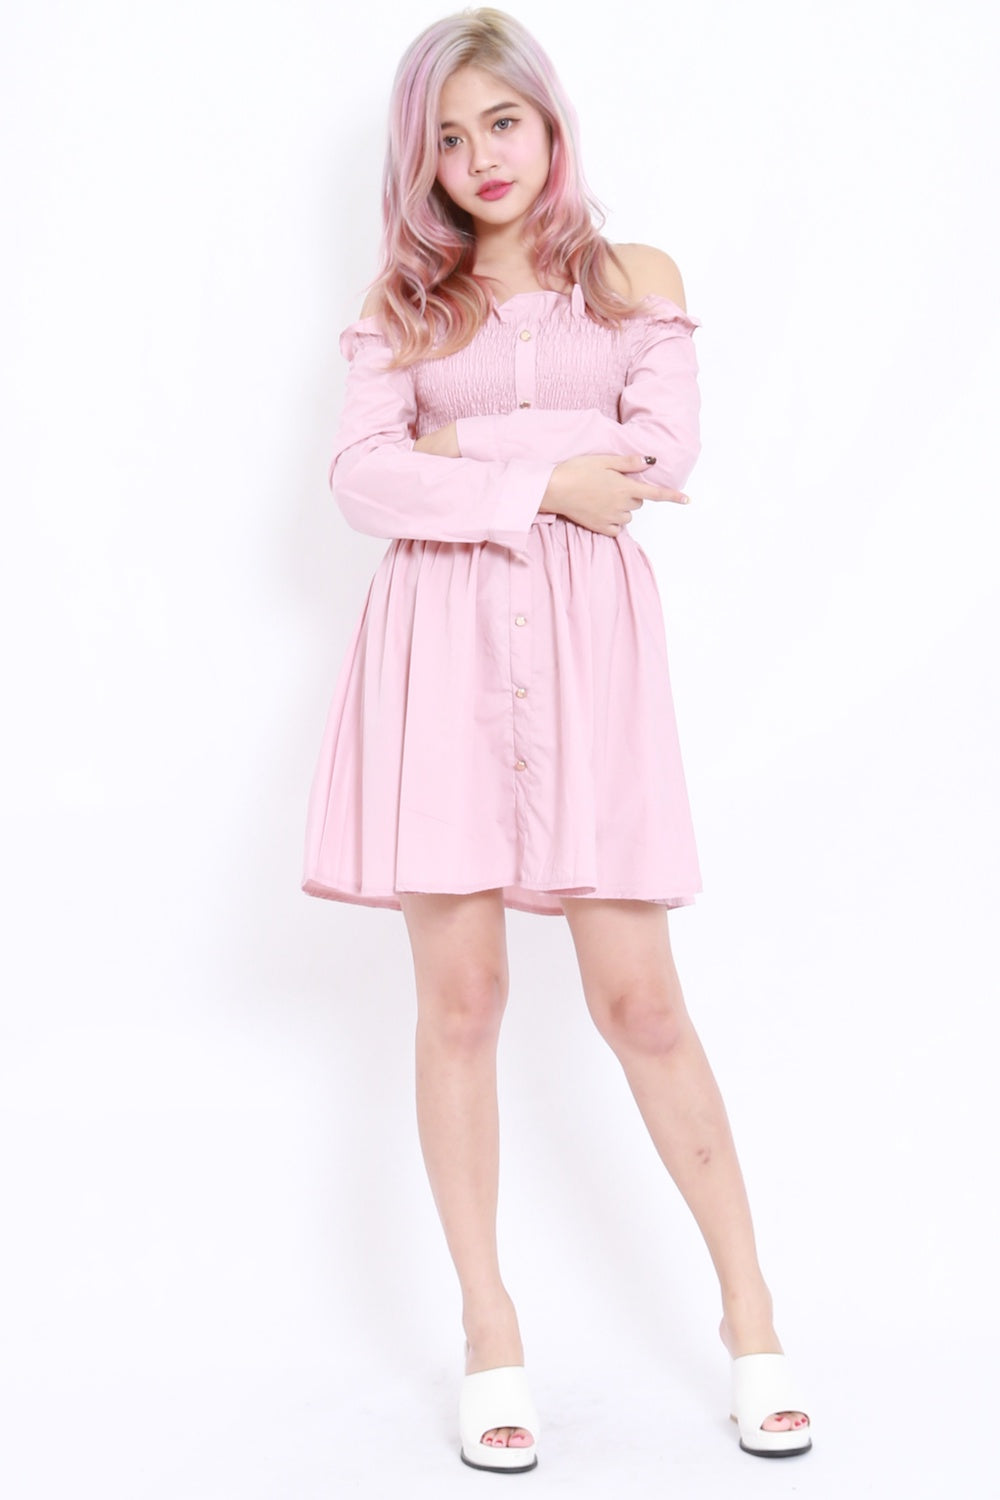 Buttons Smoked Offsie Dress LS (Pink)